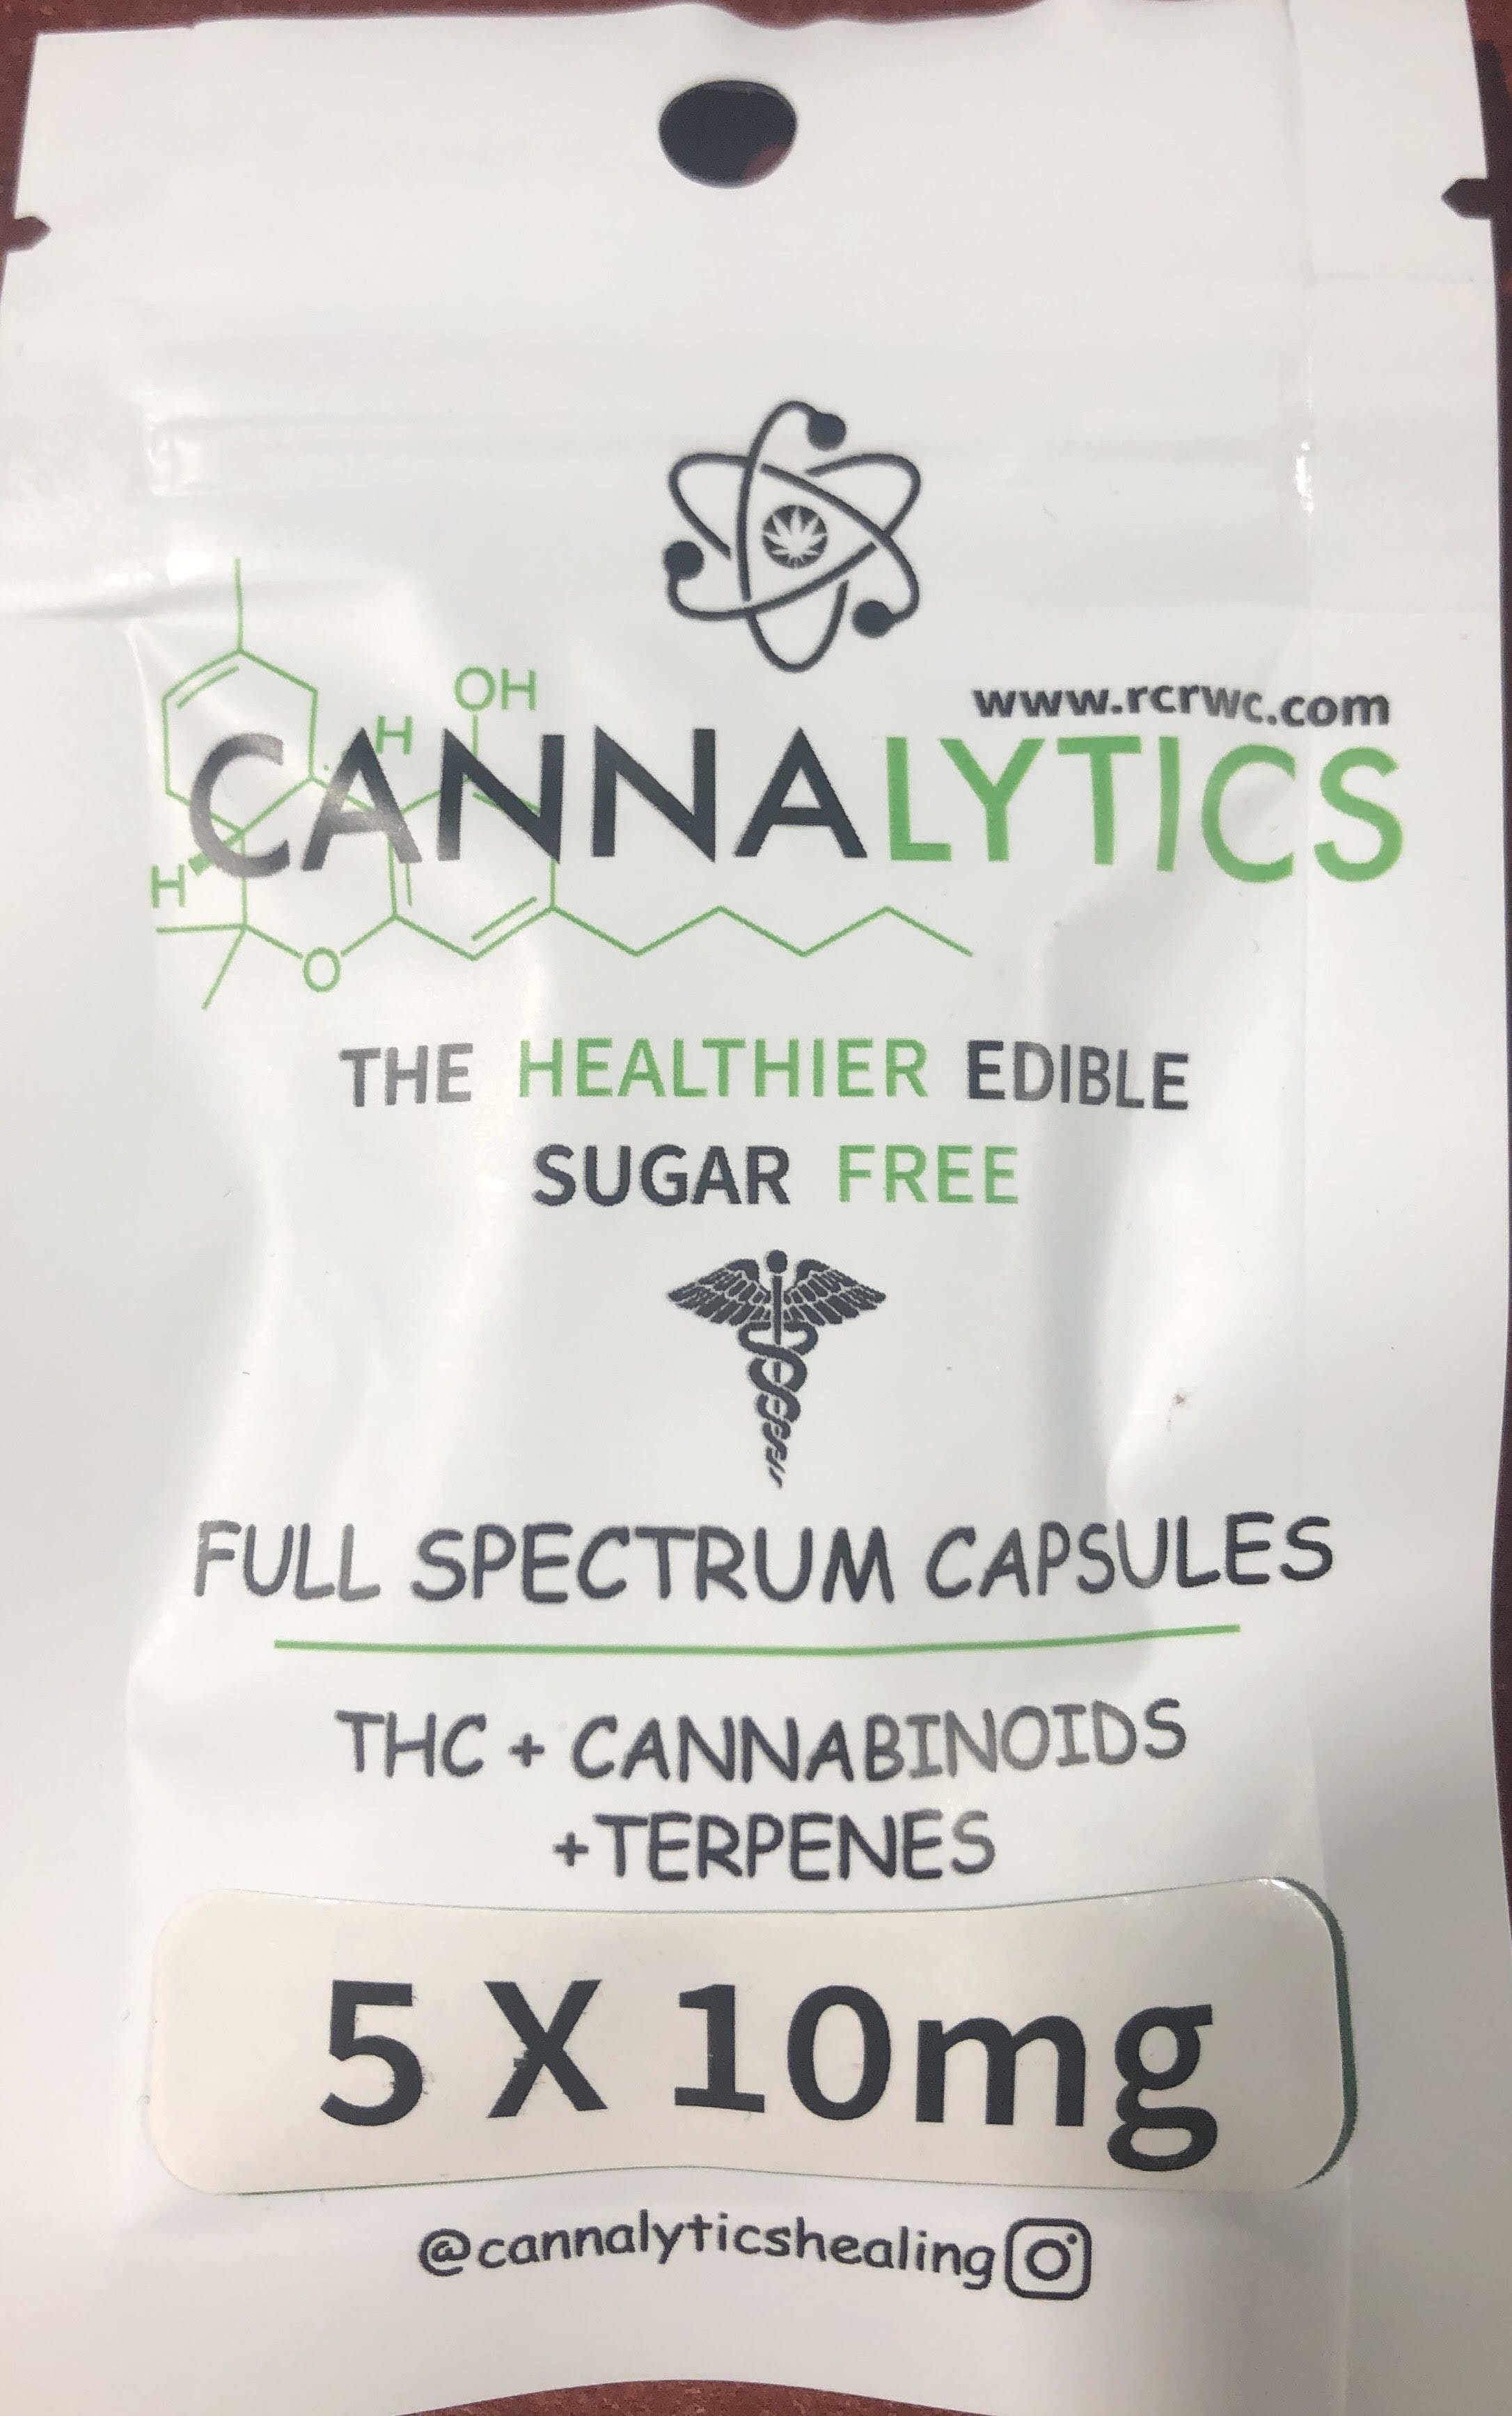 marijuana-dispensaries-6650-east-8-mile-road-detroit-detroit-cannalytics-5x10-capsules